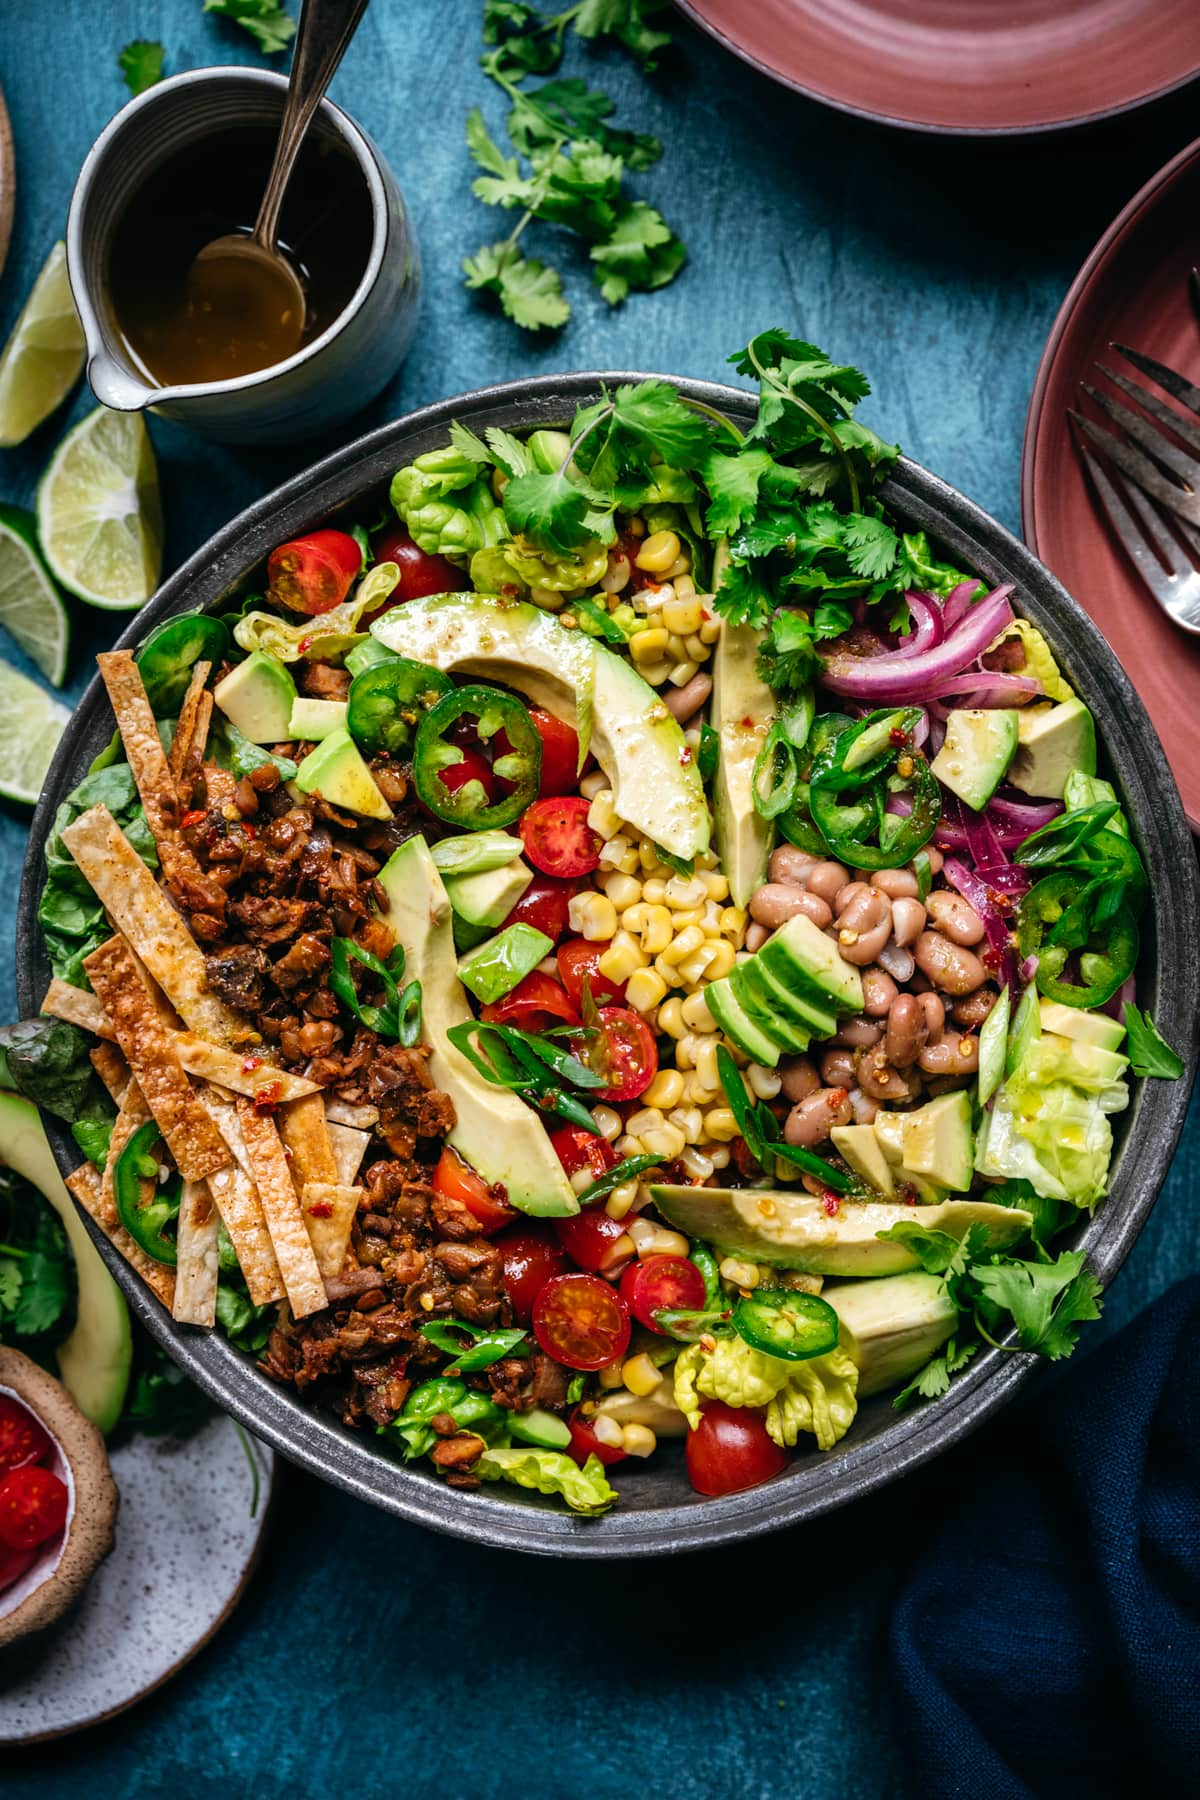 overhead view of vegan taco salad in large bowl